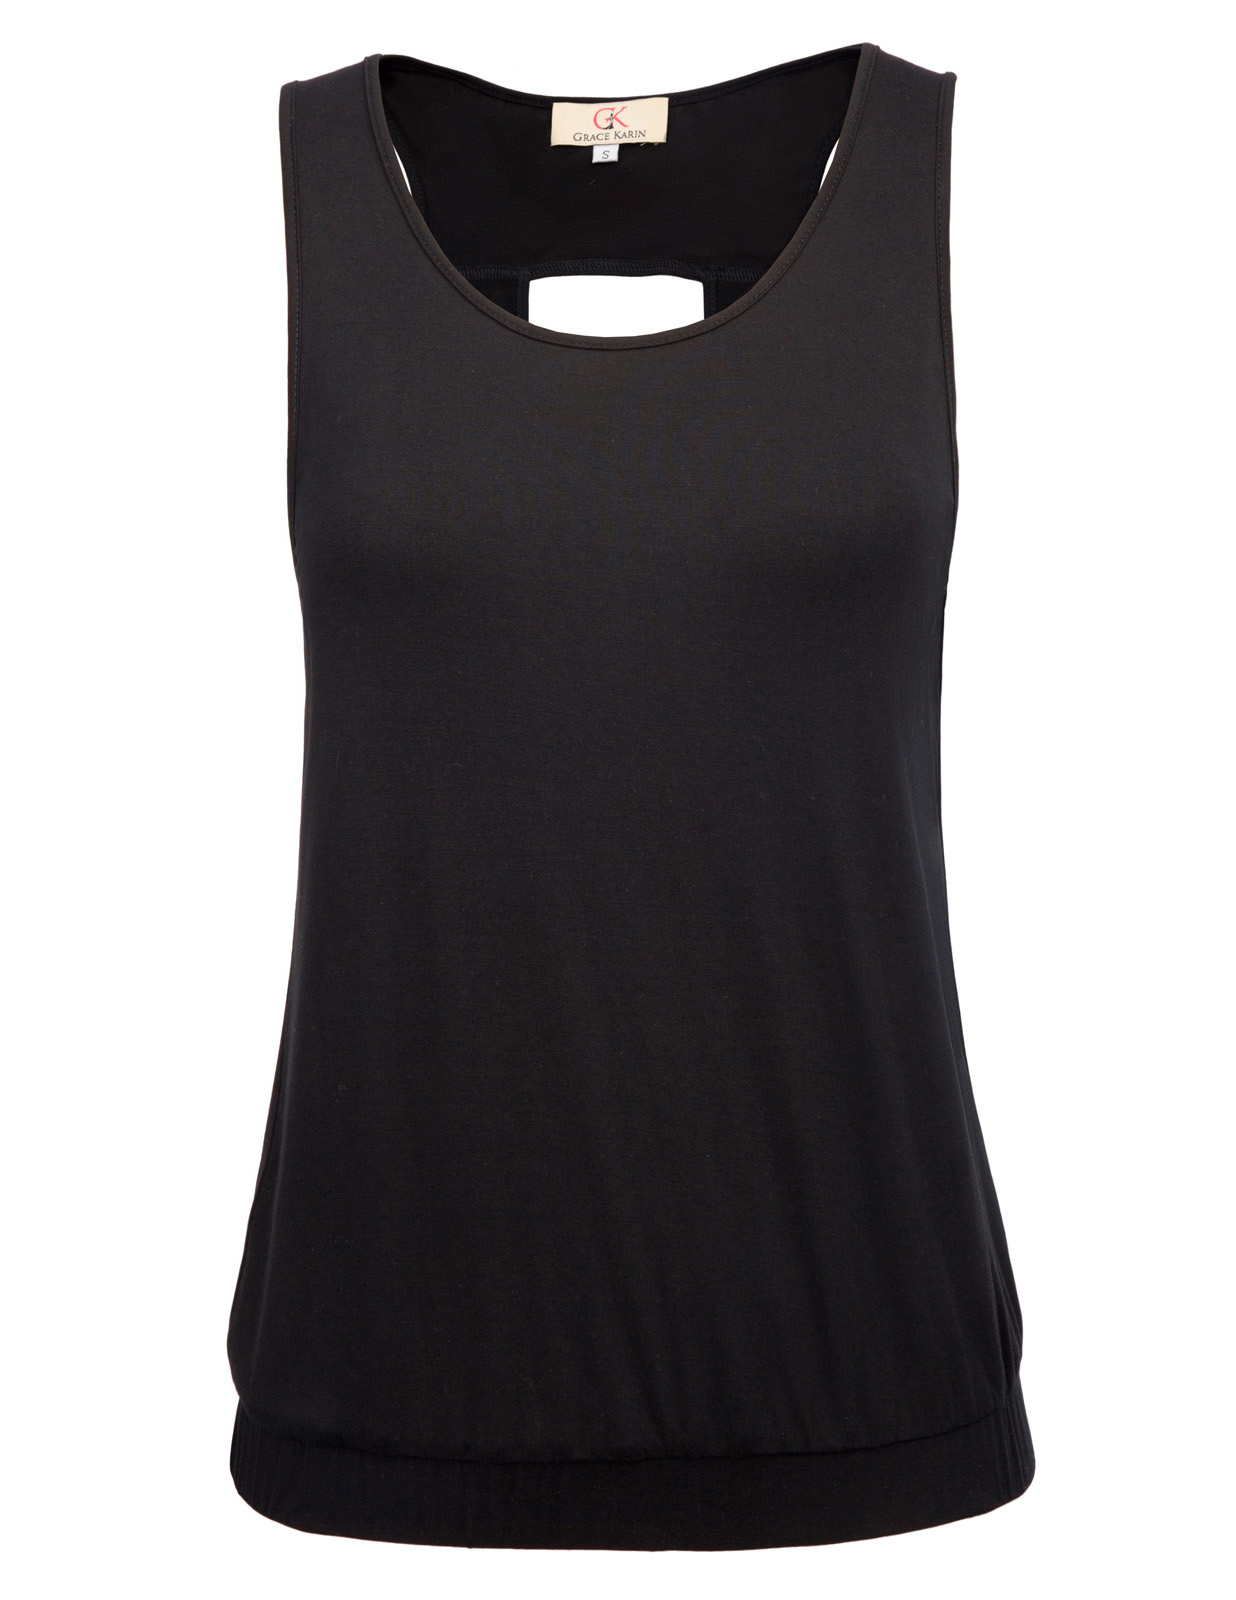 summer cool tank top Sexy Women Comfy Sleeveless Hollowed Back Rayon solid color casual Tank Top